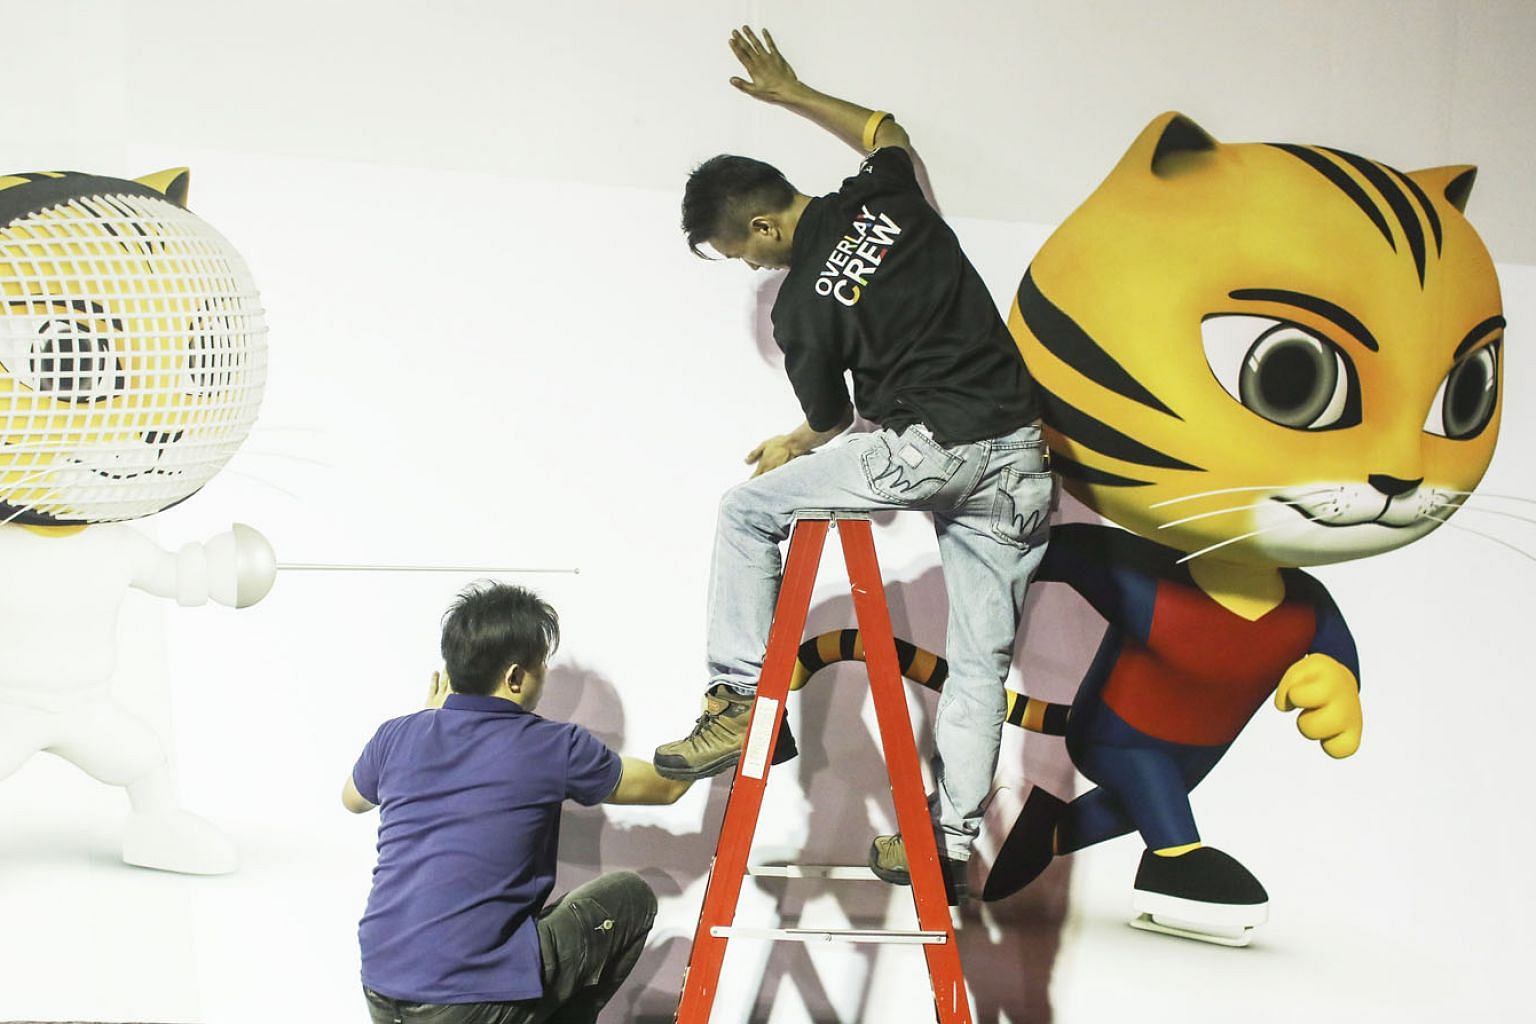 Workers putting up a SEA Games billboard in the main media centre in Kuala Lumpur last week, before the start of the sporting event today. The host nation gets to decide what sports to drop and include and, in recent years, this leeway has become a t